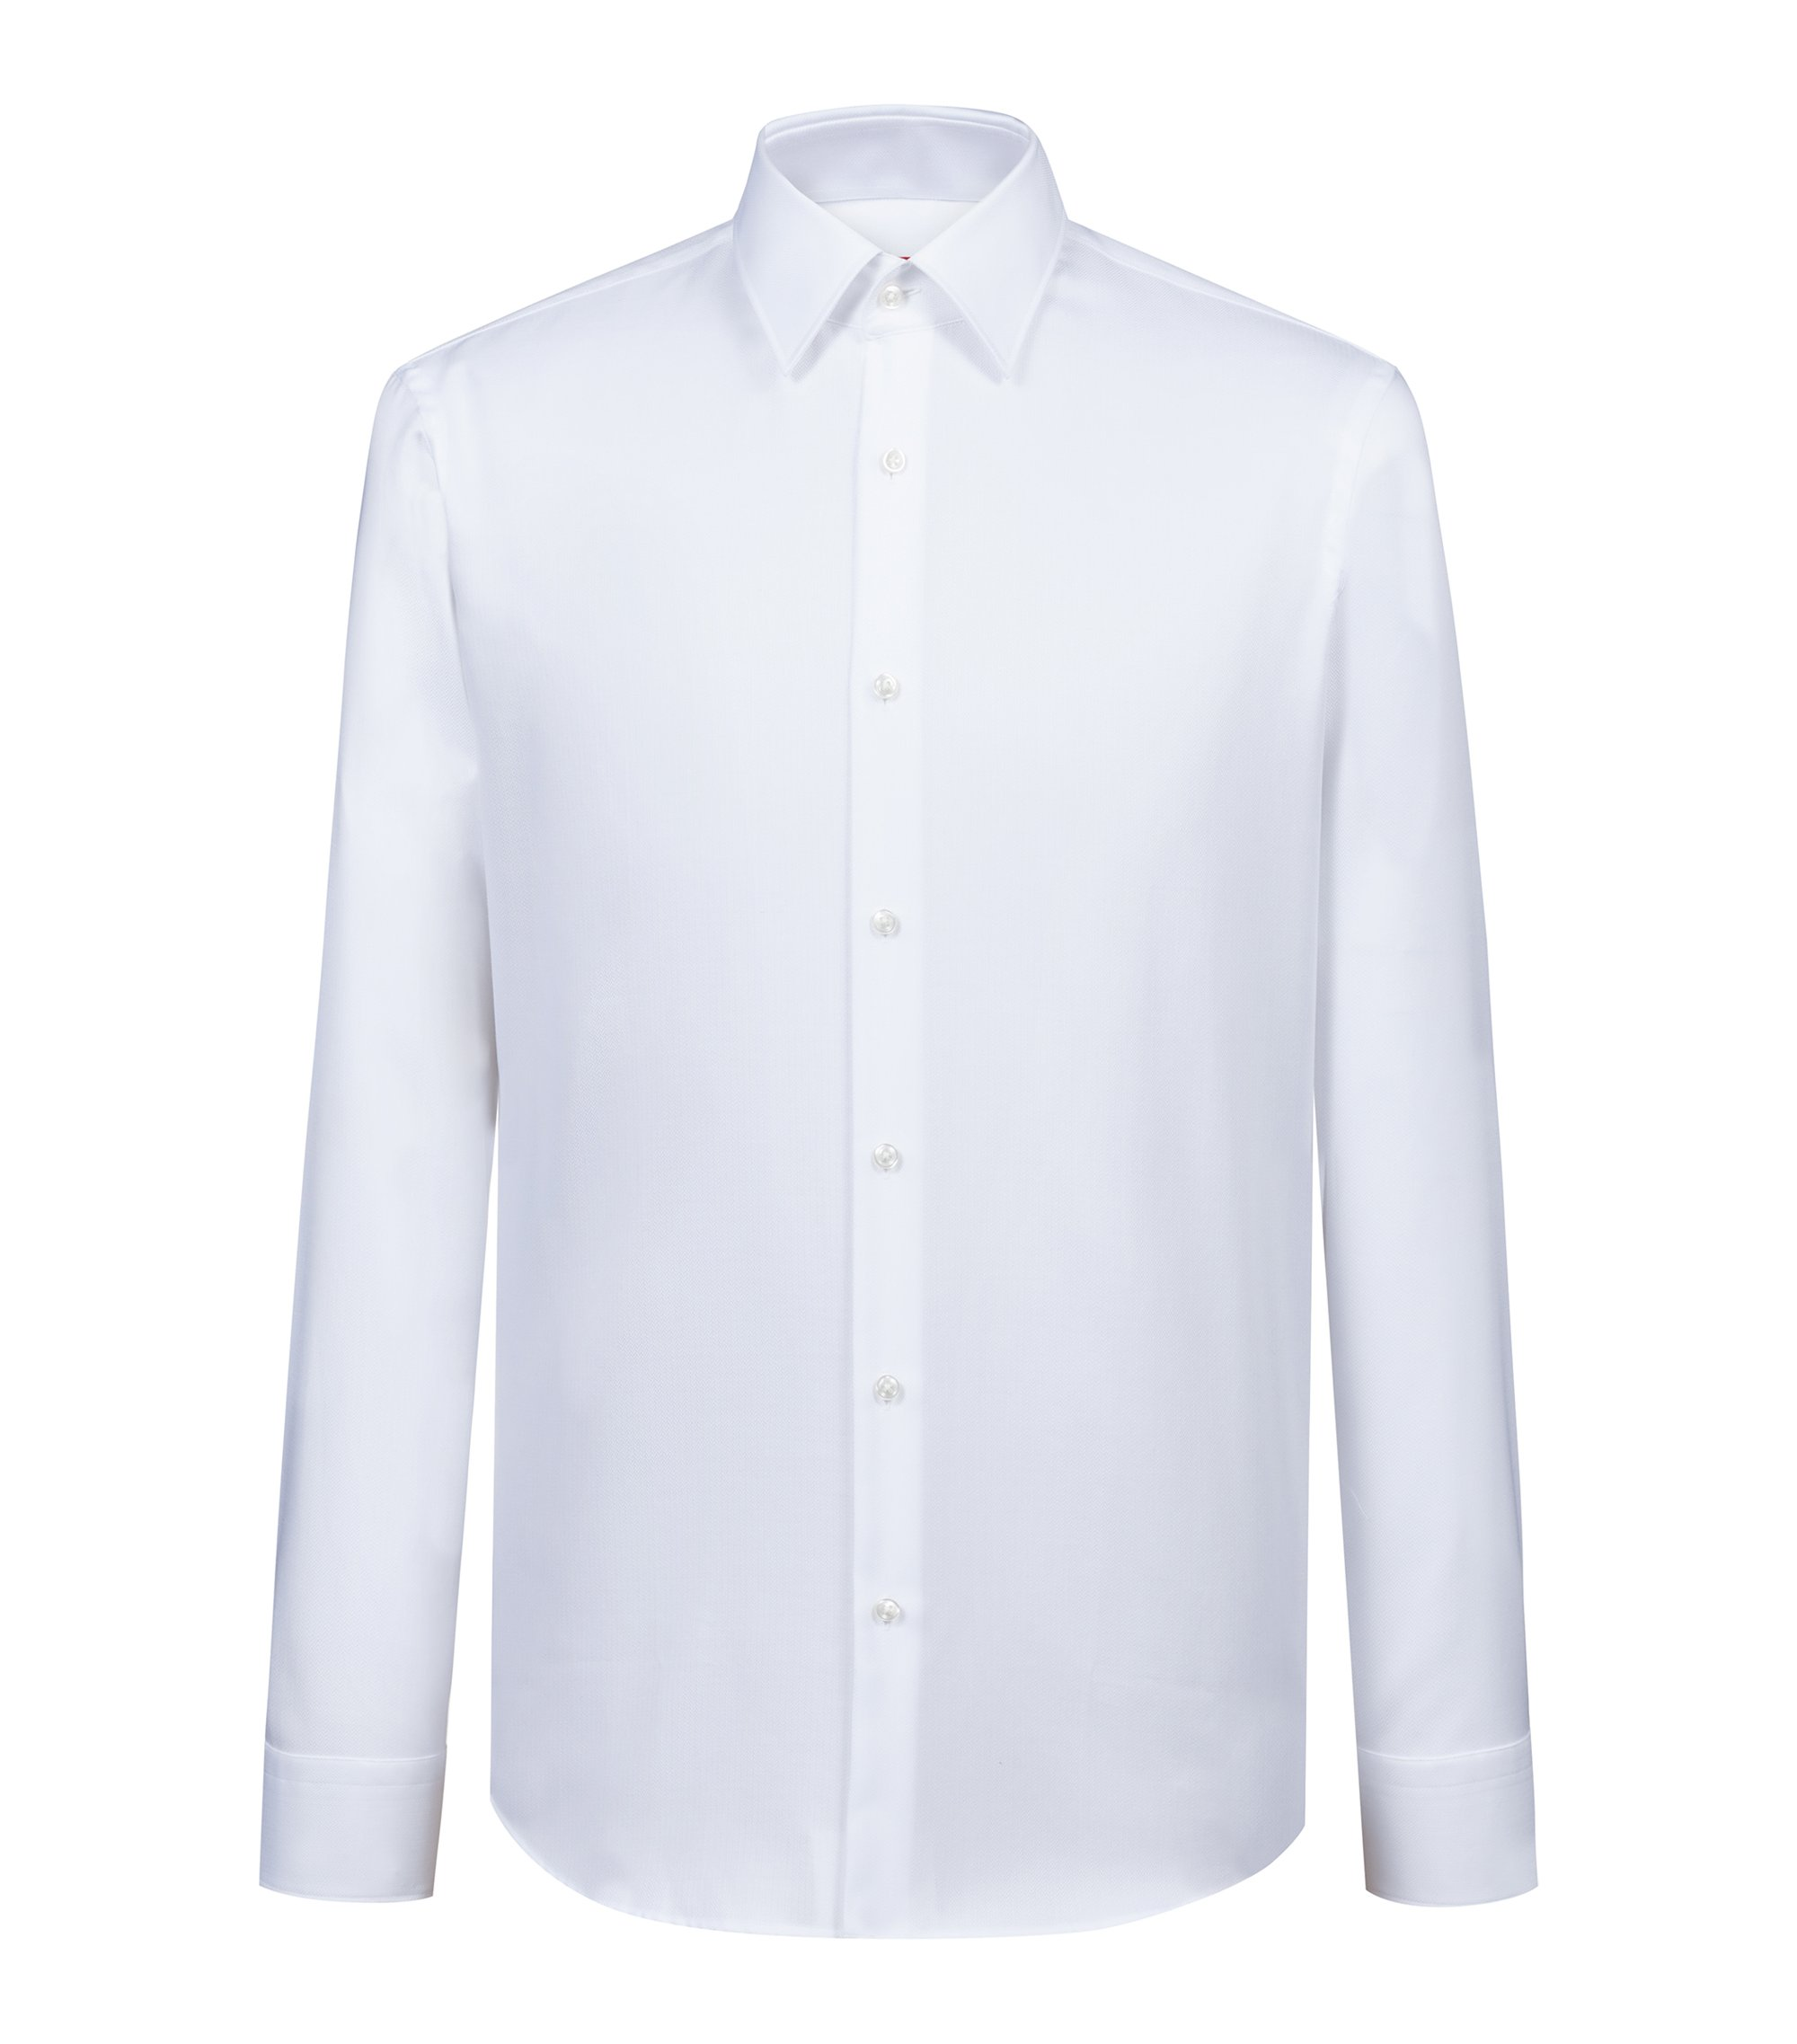 Regular-fit shirt in easy-iron herringbone cotton, White